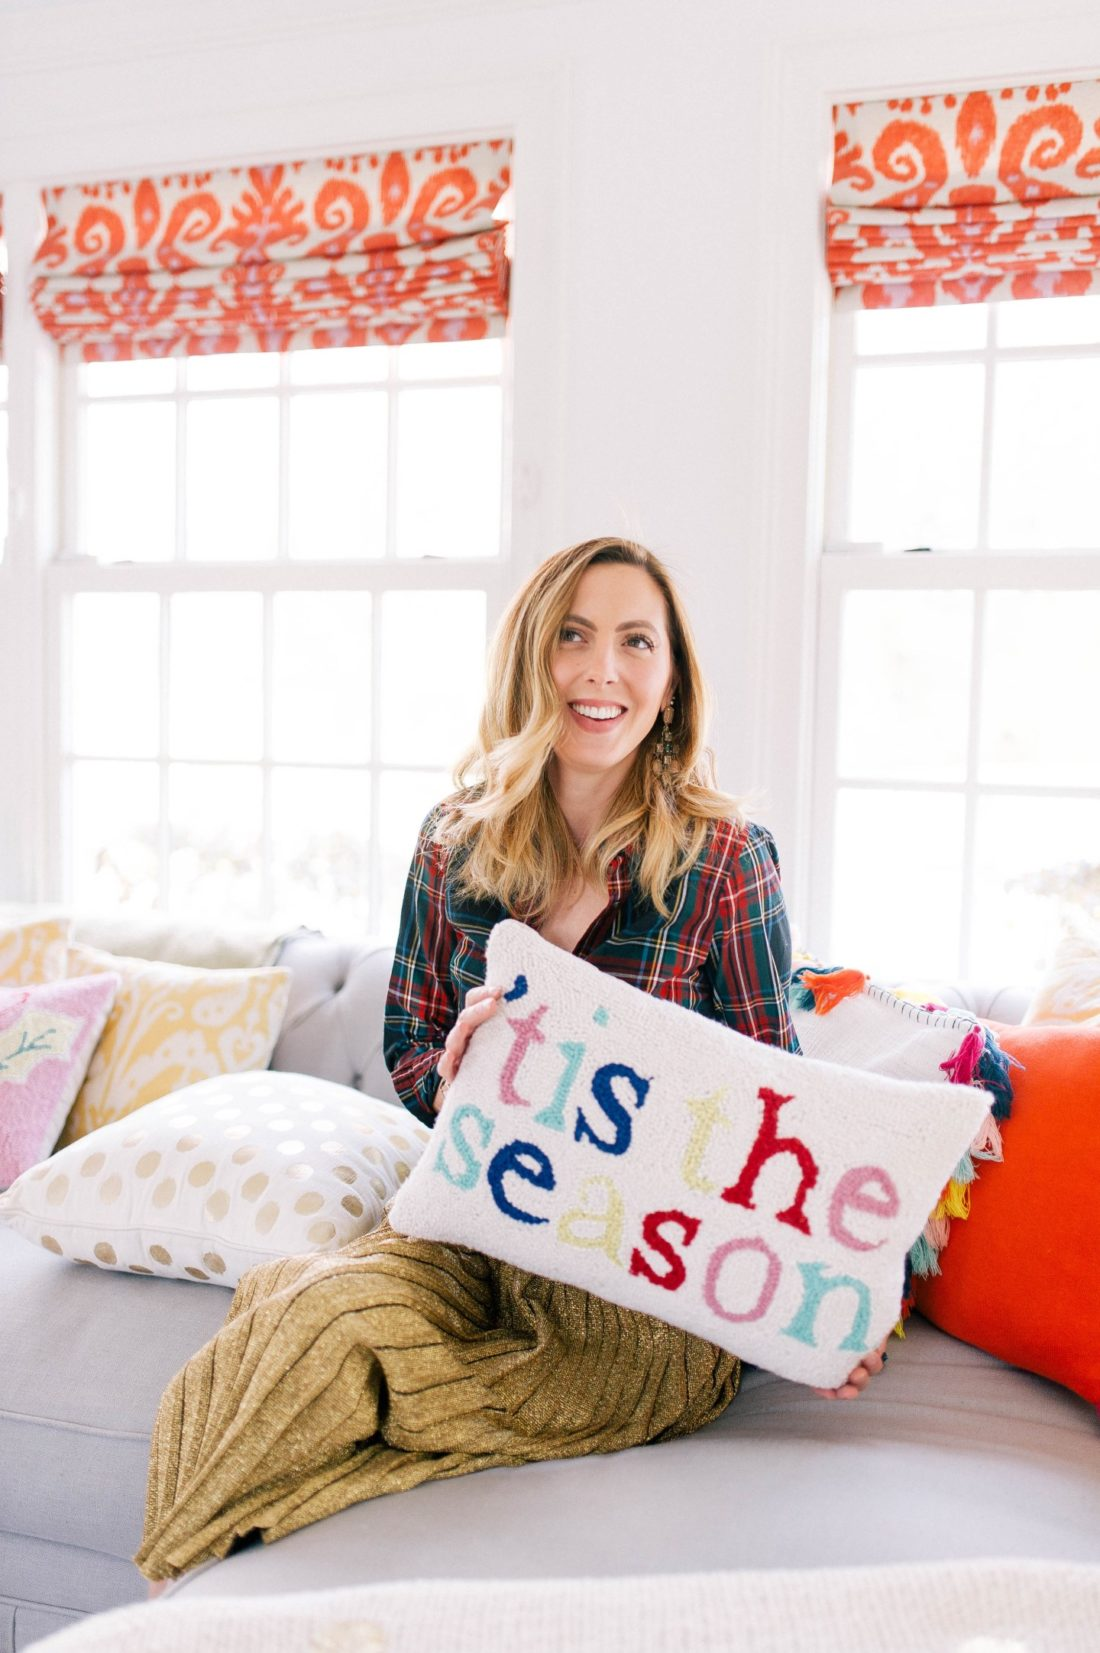 Eva Amurri Martino wears a plaid shirt and gold skirt and holds a festive Christmas pillow in the family room of her Connecticut home